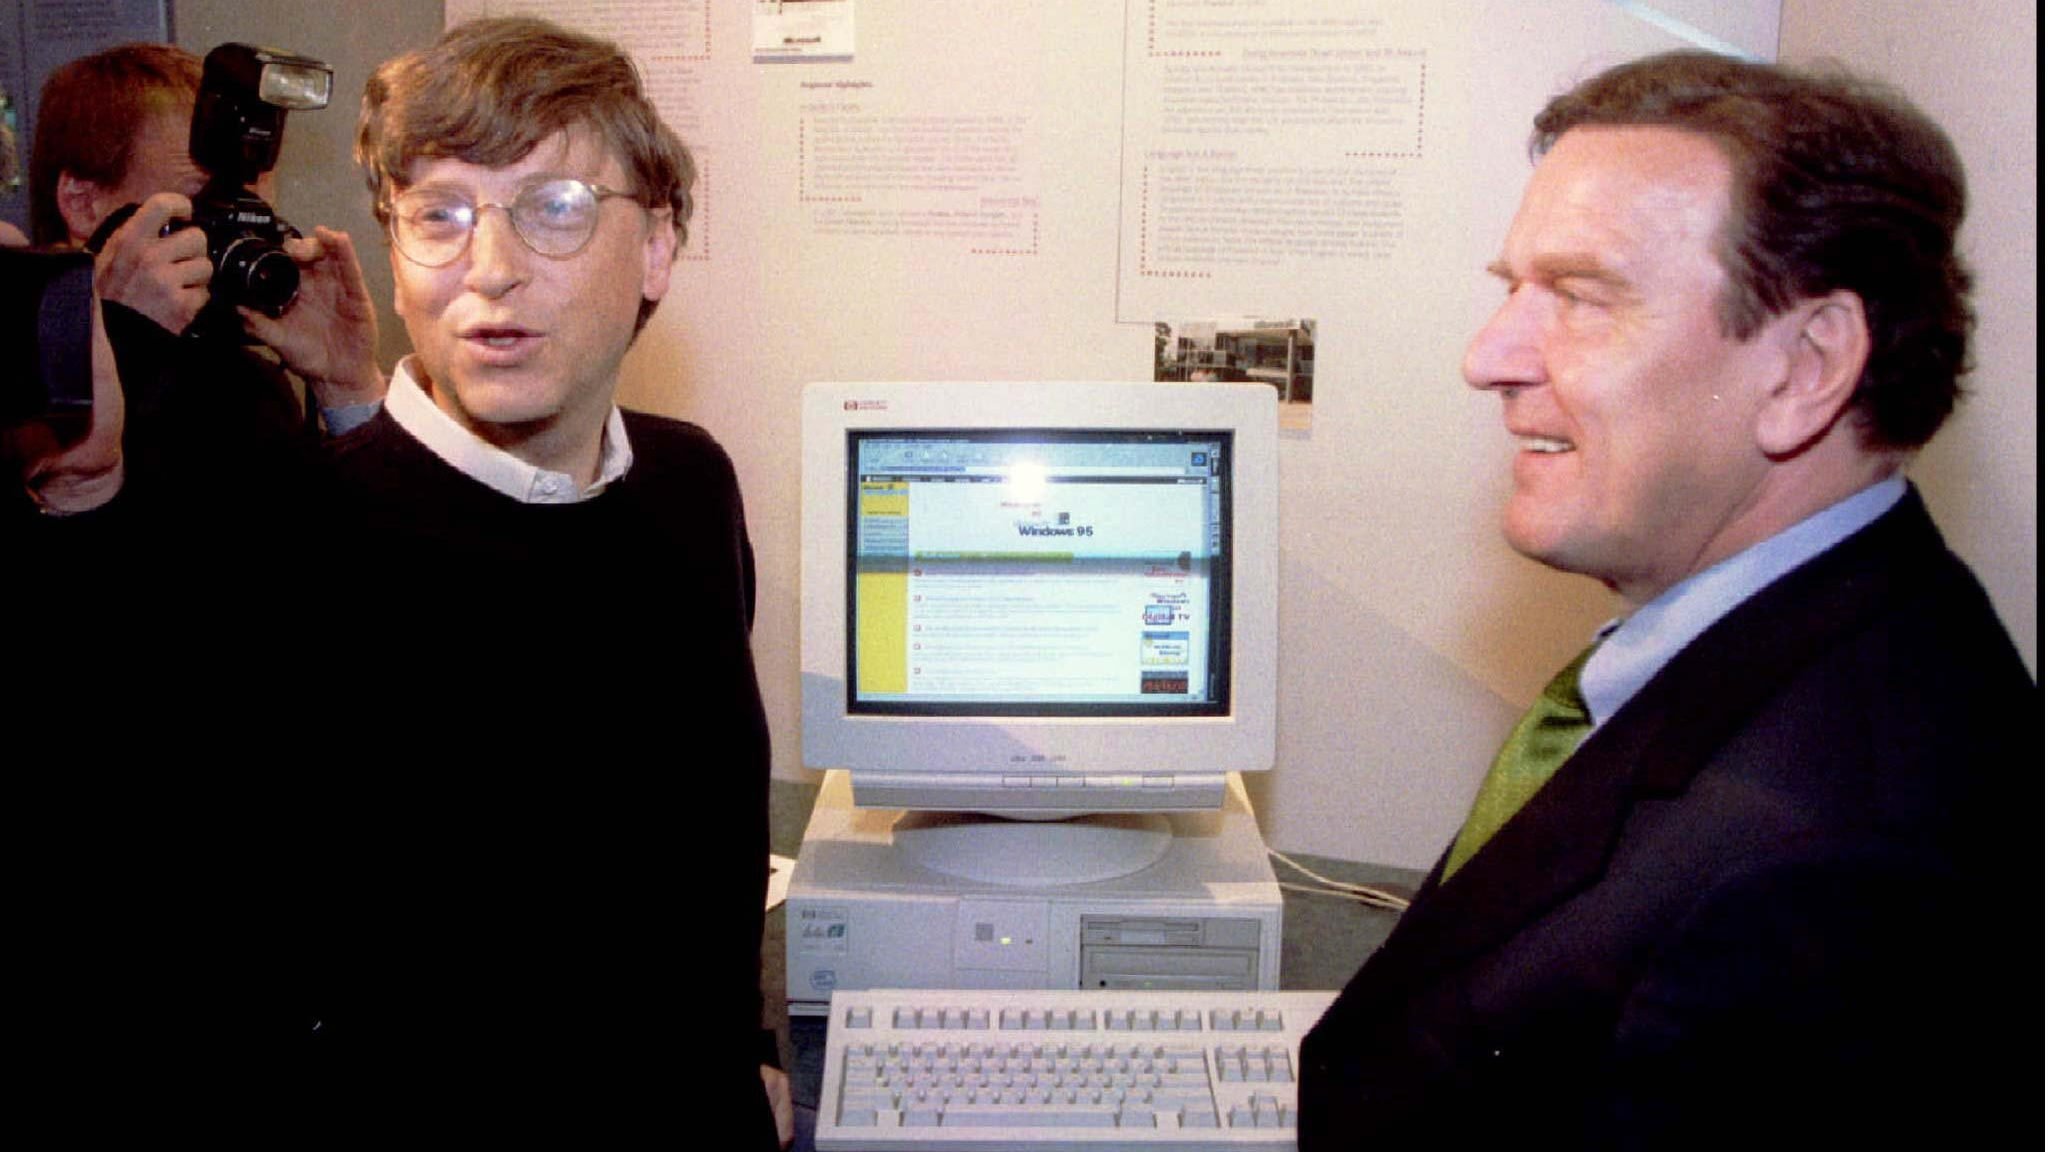 Microsoft mogul Bill Gates (L) shows Germany's Lower Saxony Prime Minister Gerhard Schroeder how to access the Internet during Schroeder's tour of the software company's Redmond, Washington campus, May 1.